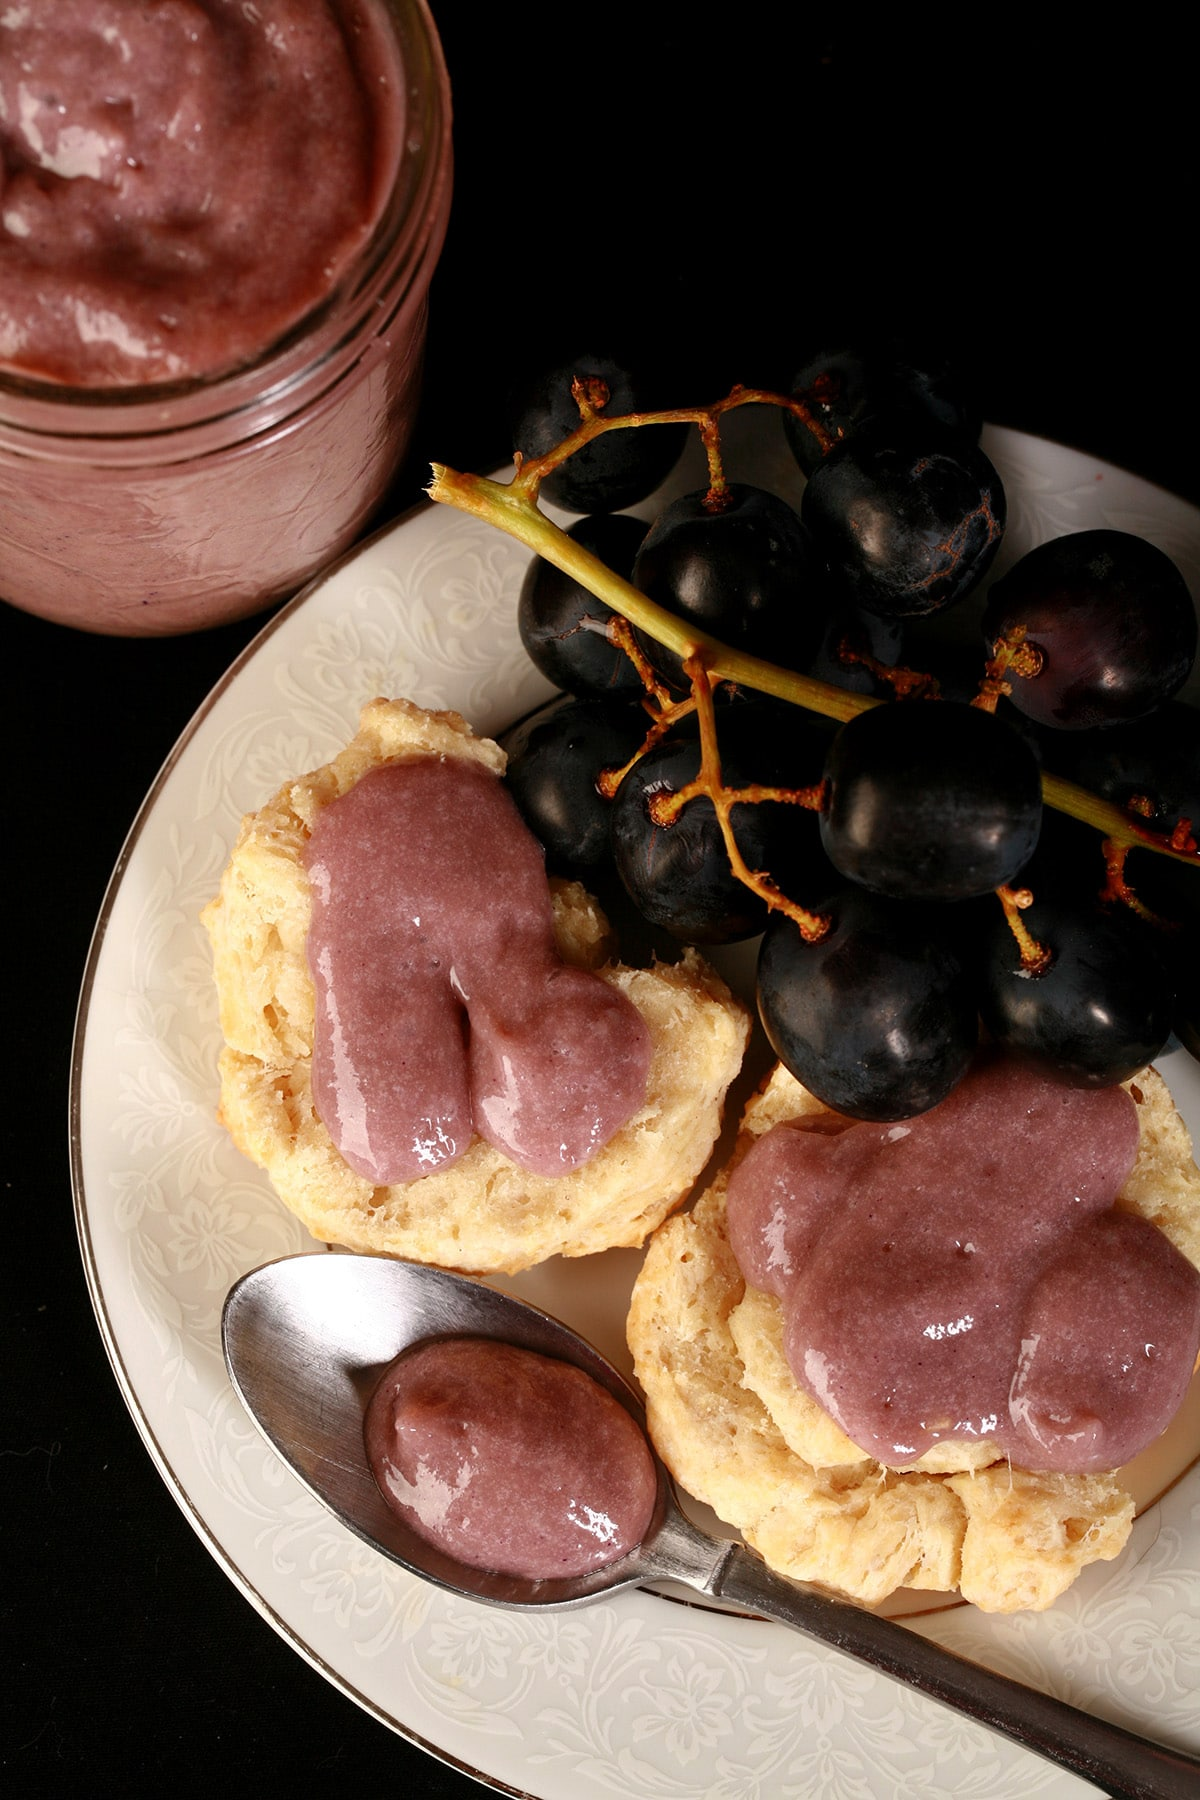 Two biscuits with grape curd on a plate, along with some concord grapes and a spoon of curd.